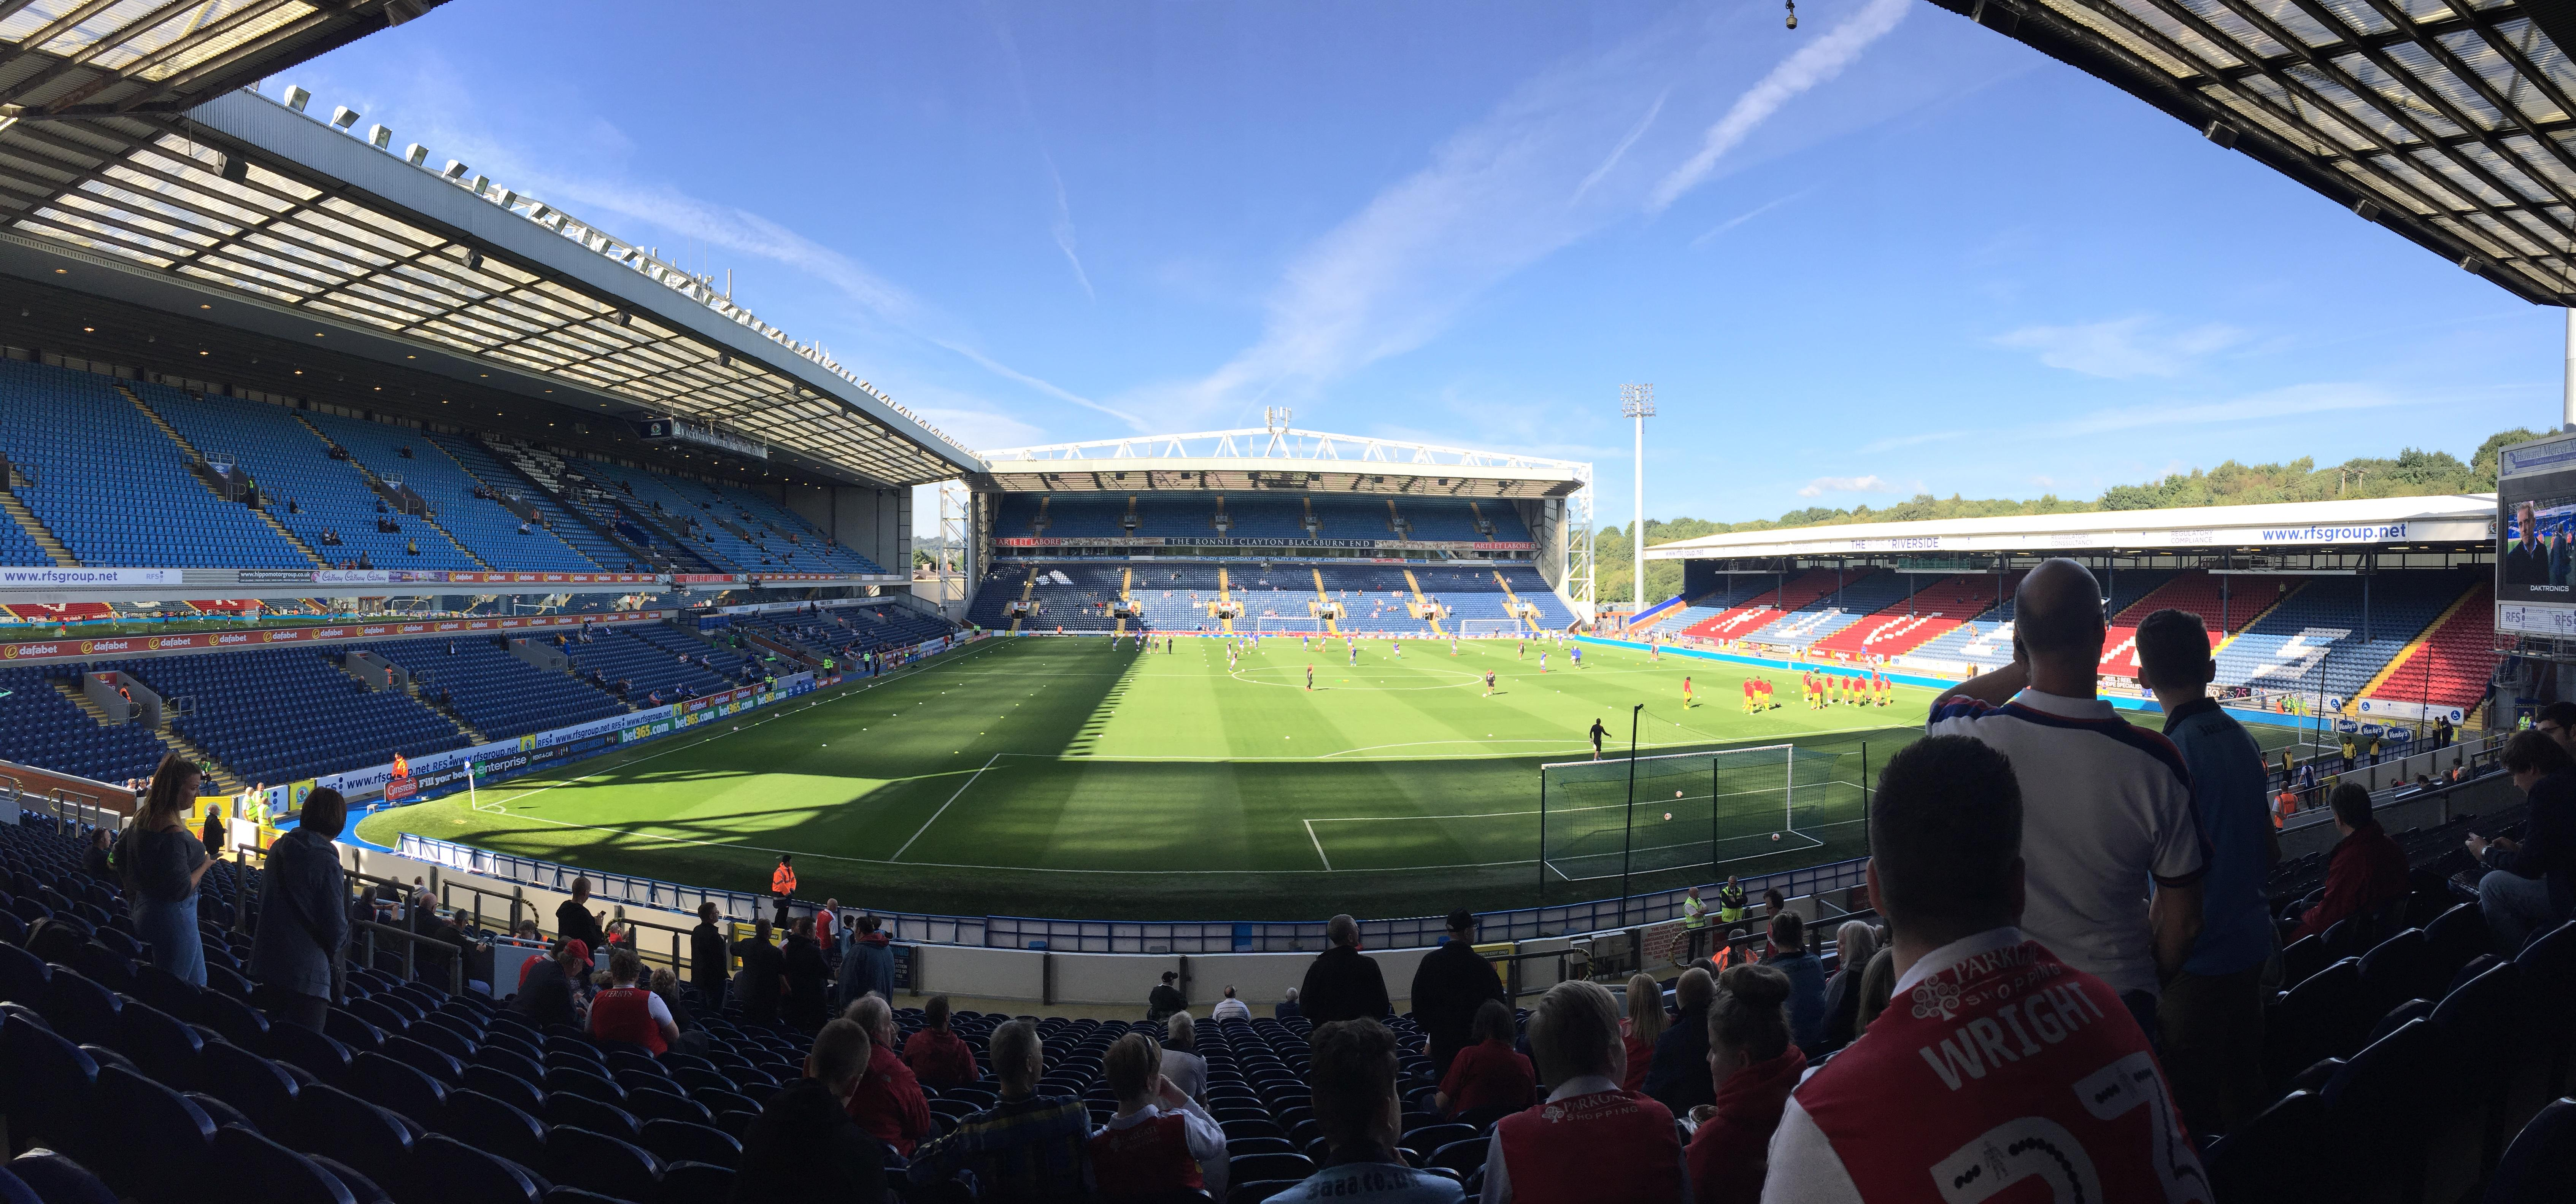 Ewood Park Section S03 Row 21 Seat 112